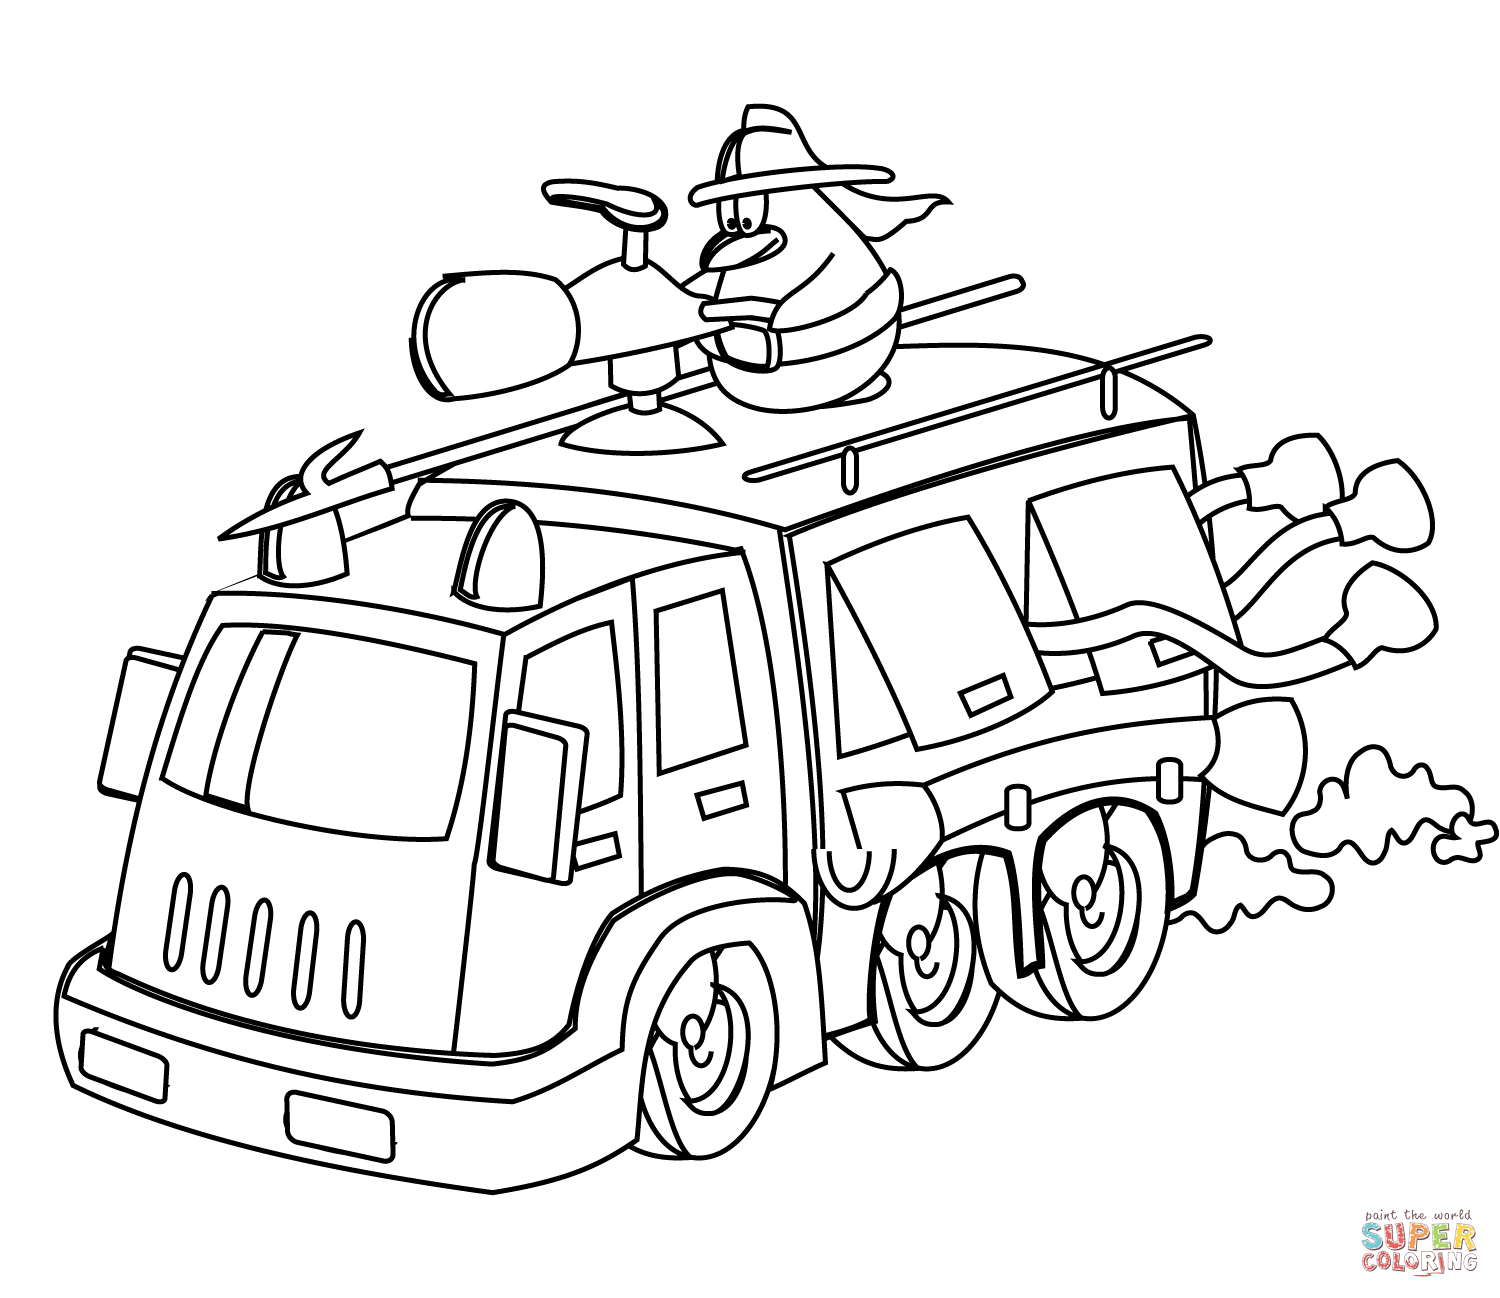 1500x1298 Cartoon Fire Truck Coloring Page Free Printable Coloring Pages